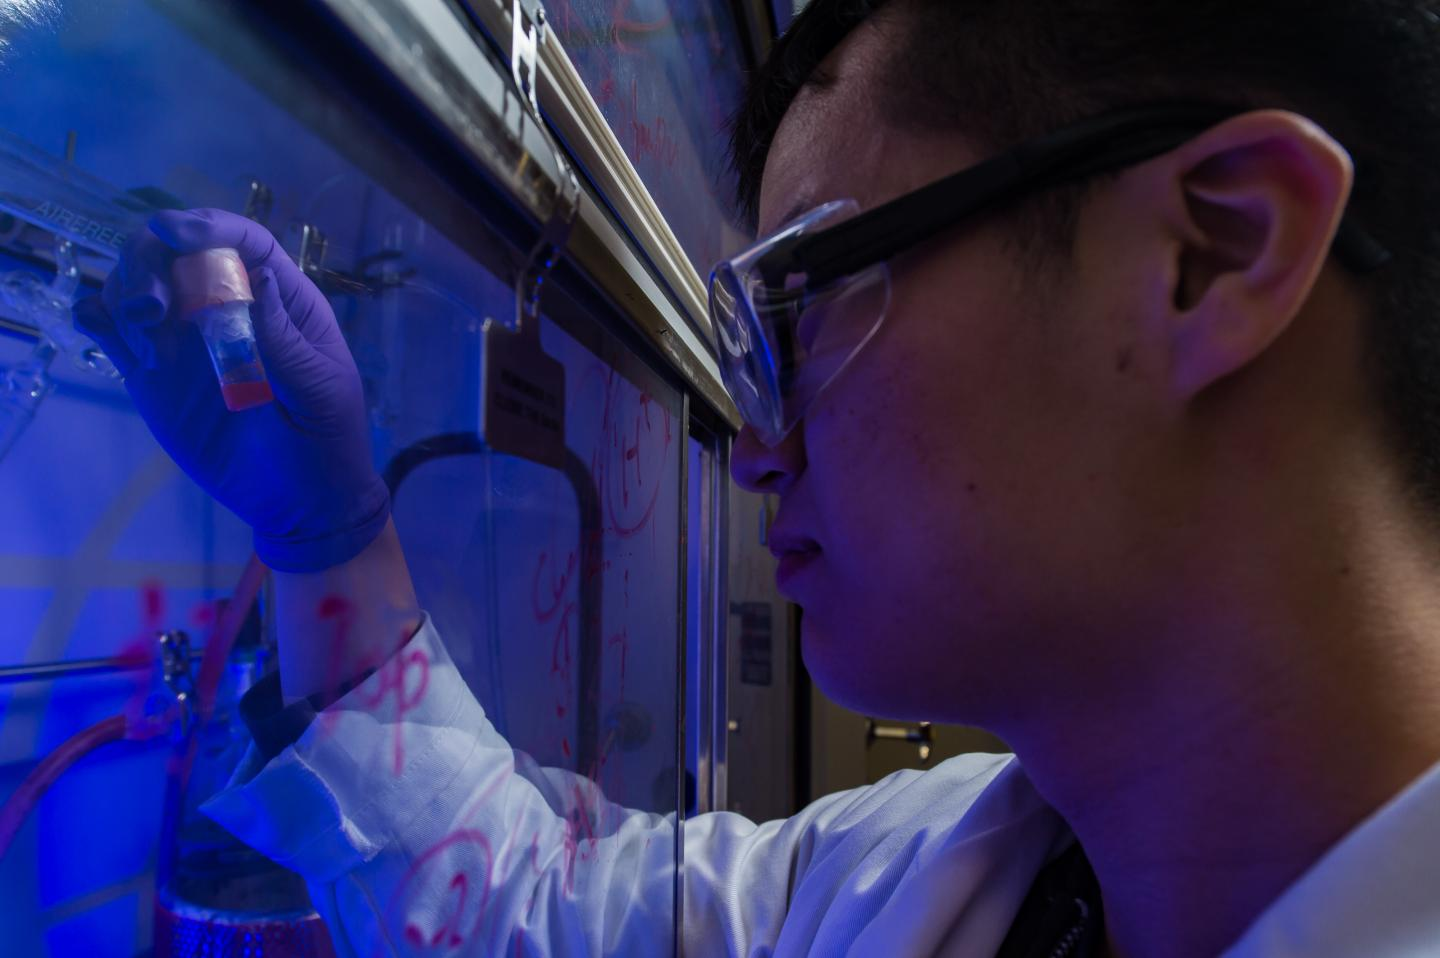 Rice University graduate student Yifan Zhu holds a vial of photosensitive, semiconducting quantum dots the lab uses as a catalyst to make functional synthetic polymers powered by light. Courtesy of Jeff Fitlow/Rice University.